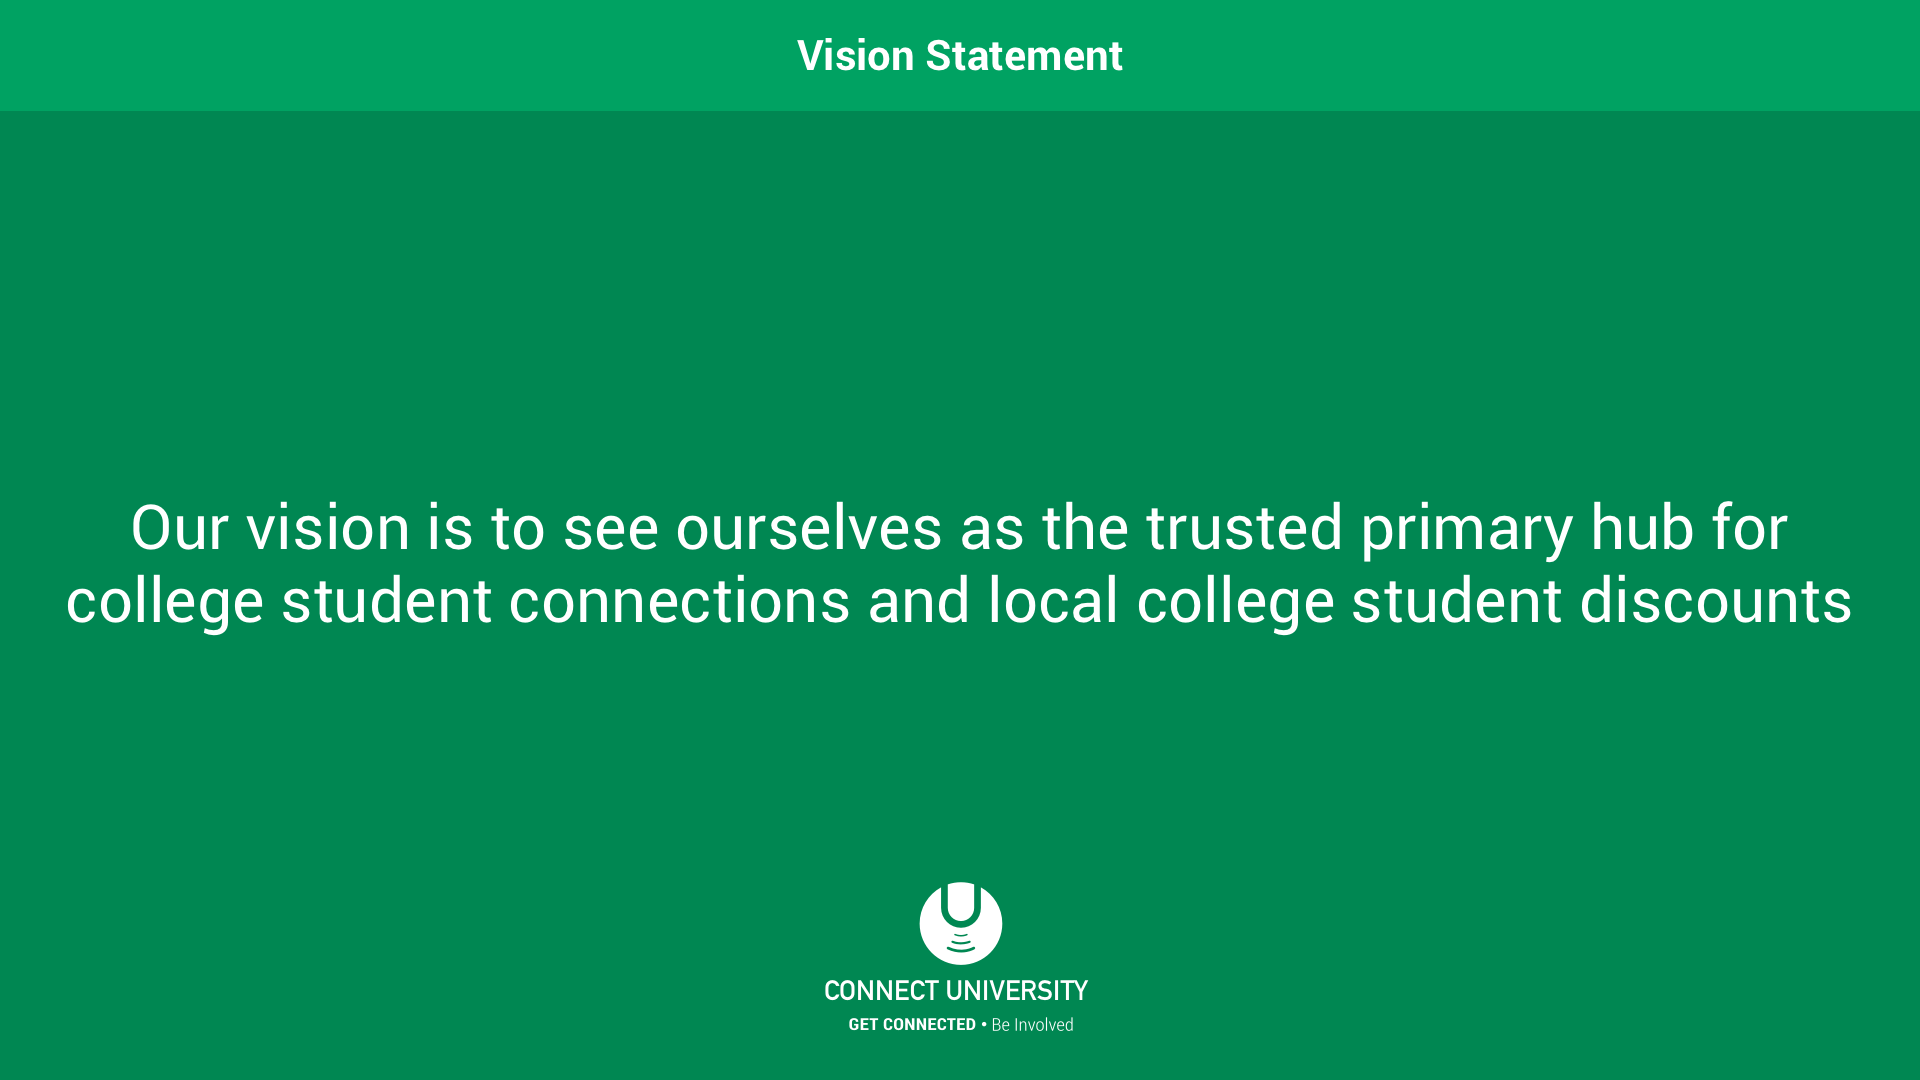 Connect University Vision Statement